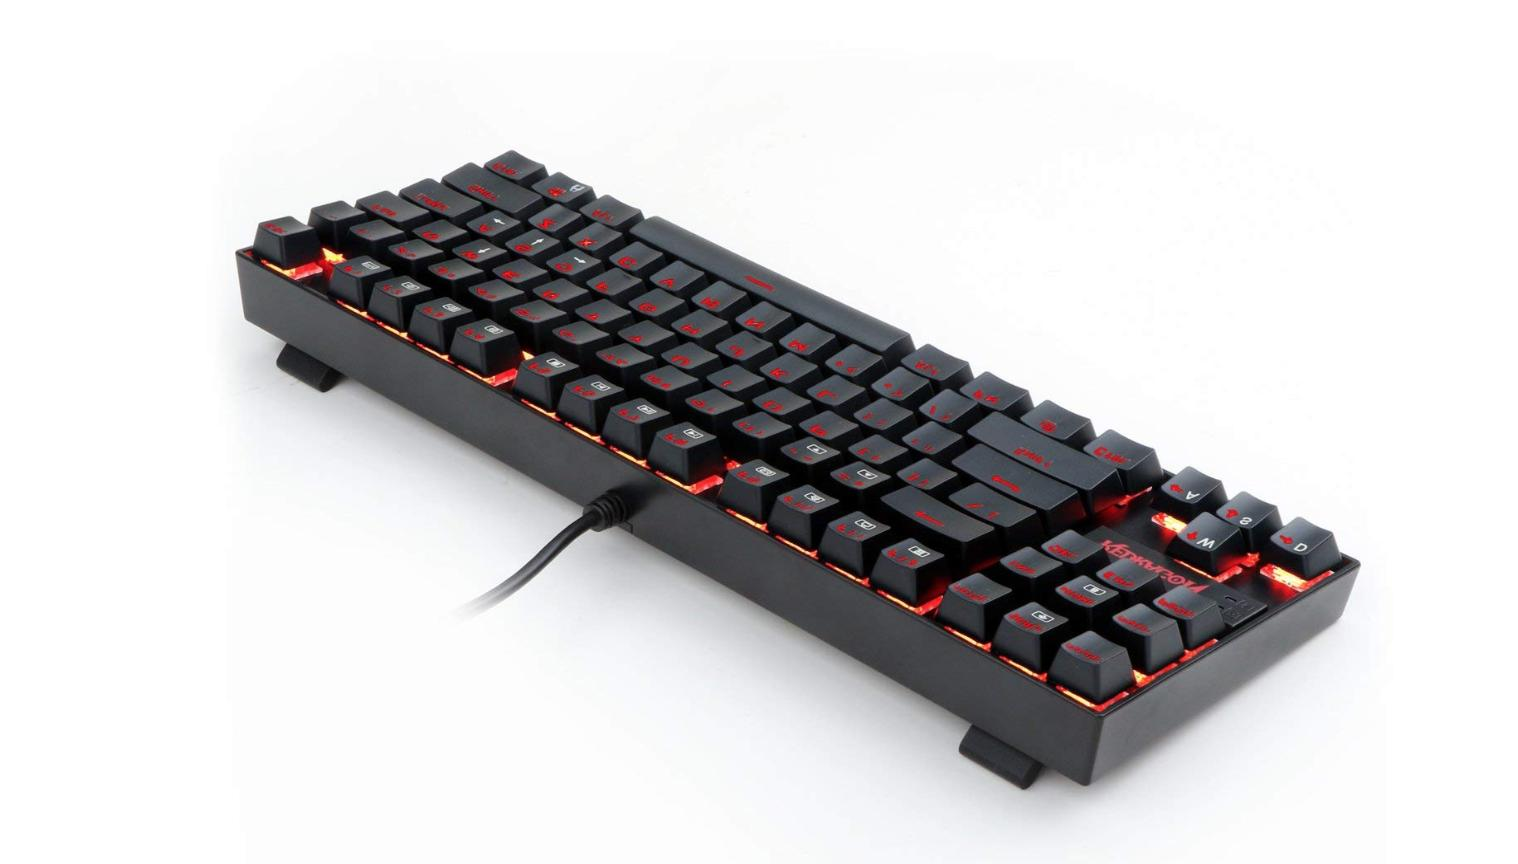 a mechanical keyboard pc accessories best gaming